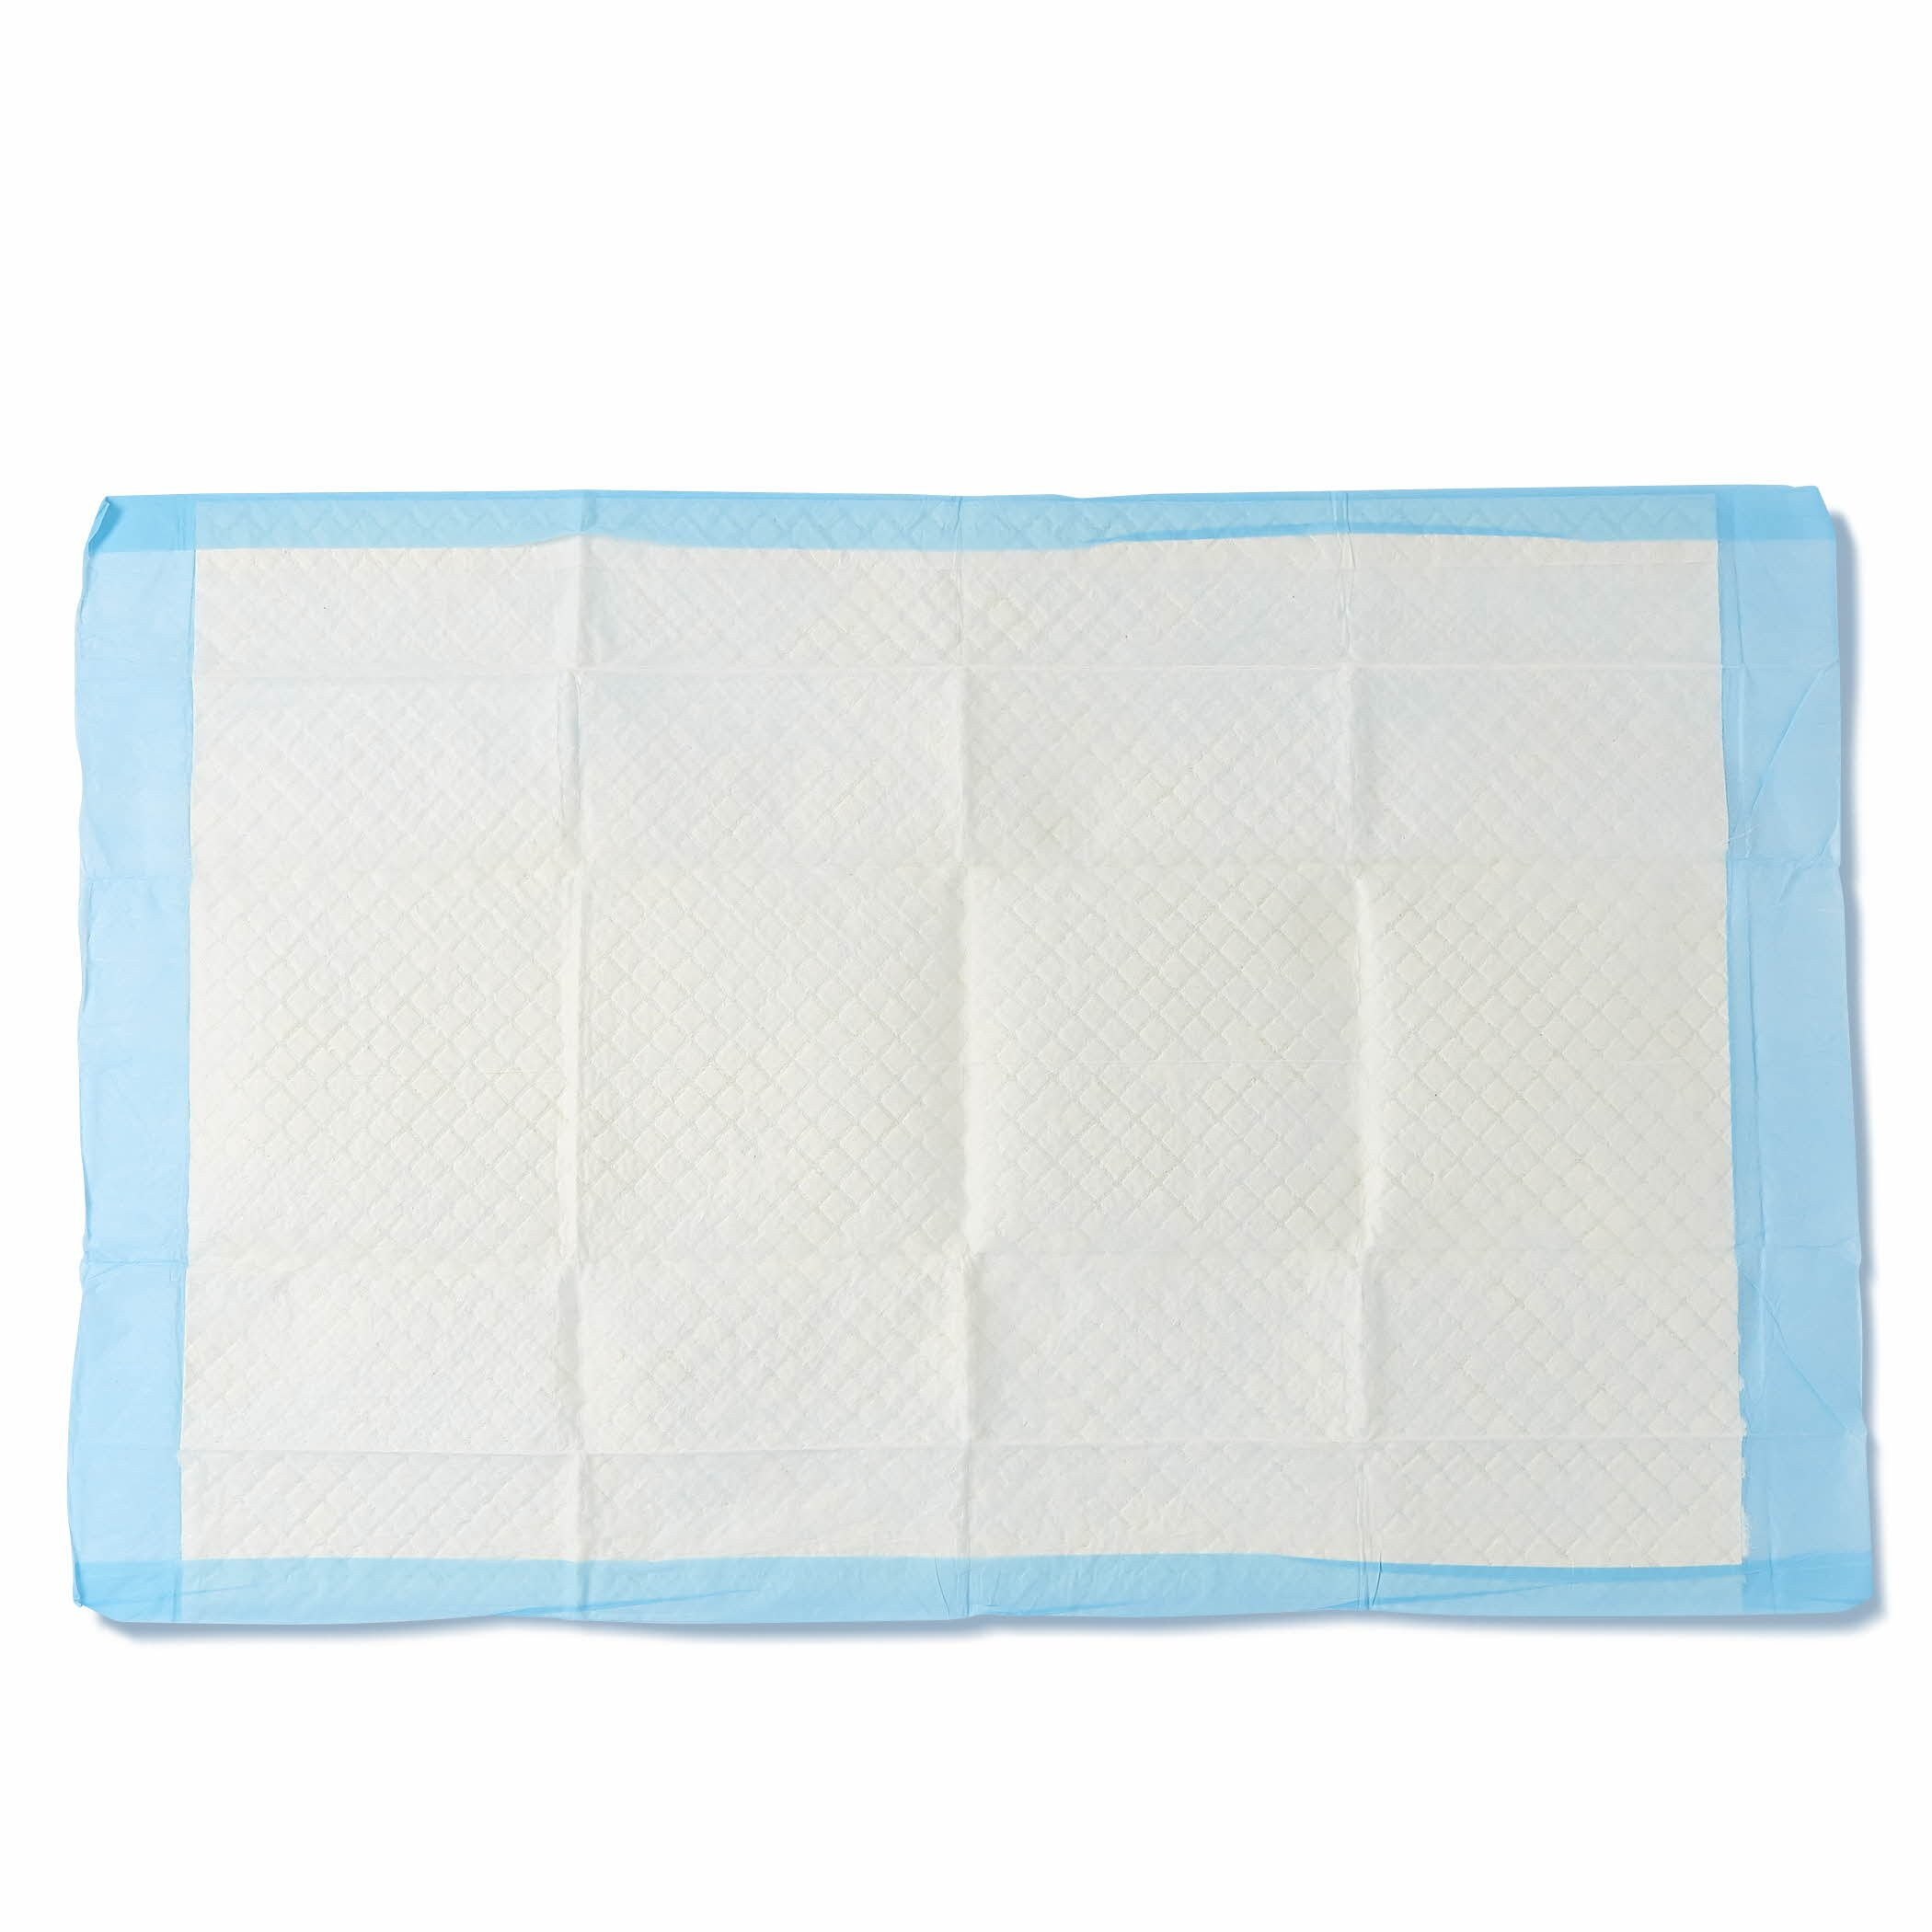 Medline Moderate Absorbency Disposable Quilted Fluff Underpads, 23 x 36 inches, 150 count (25 underpads per bag) - MSC281264, Blue by Medline